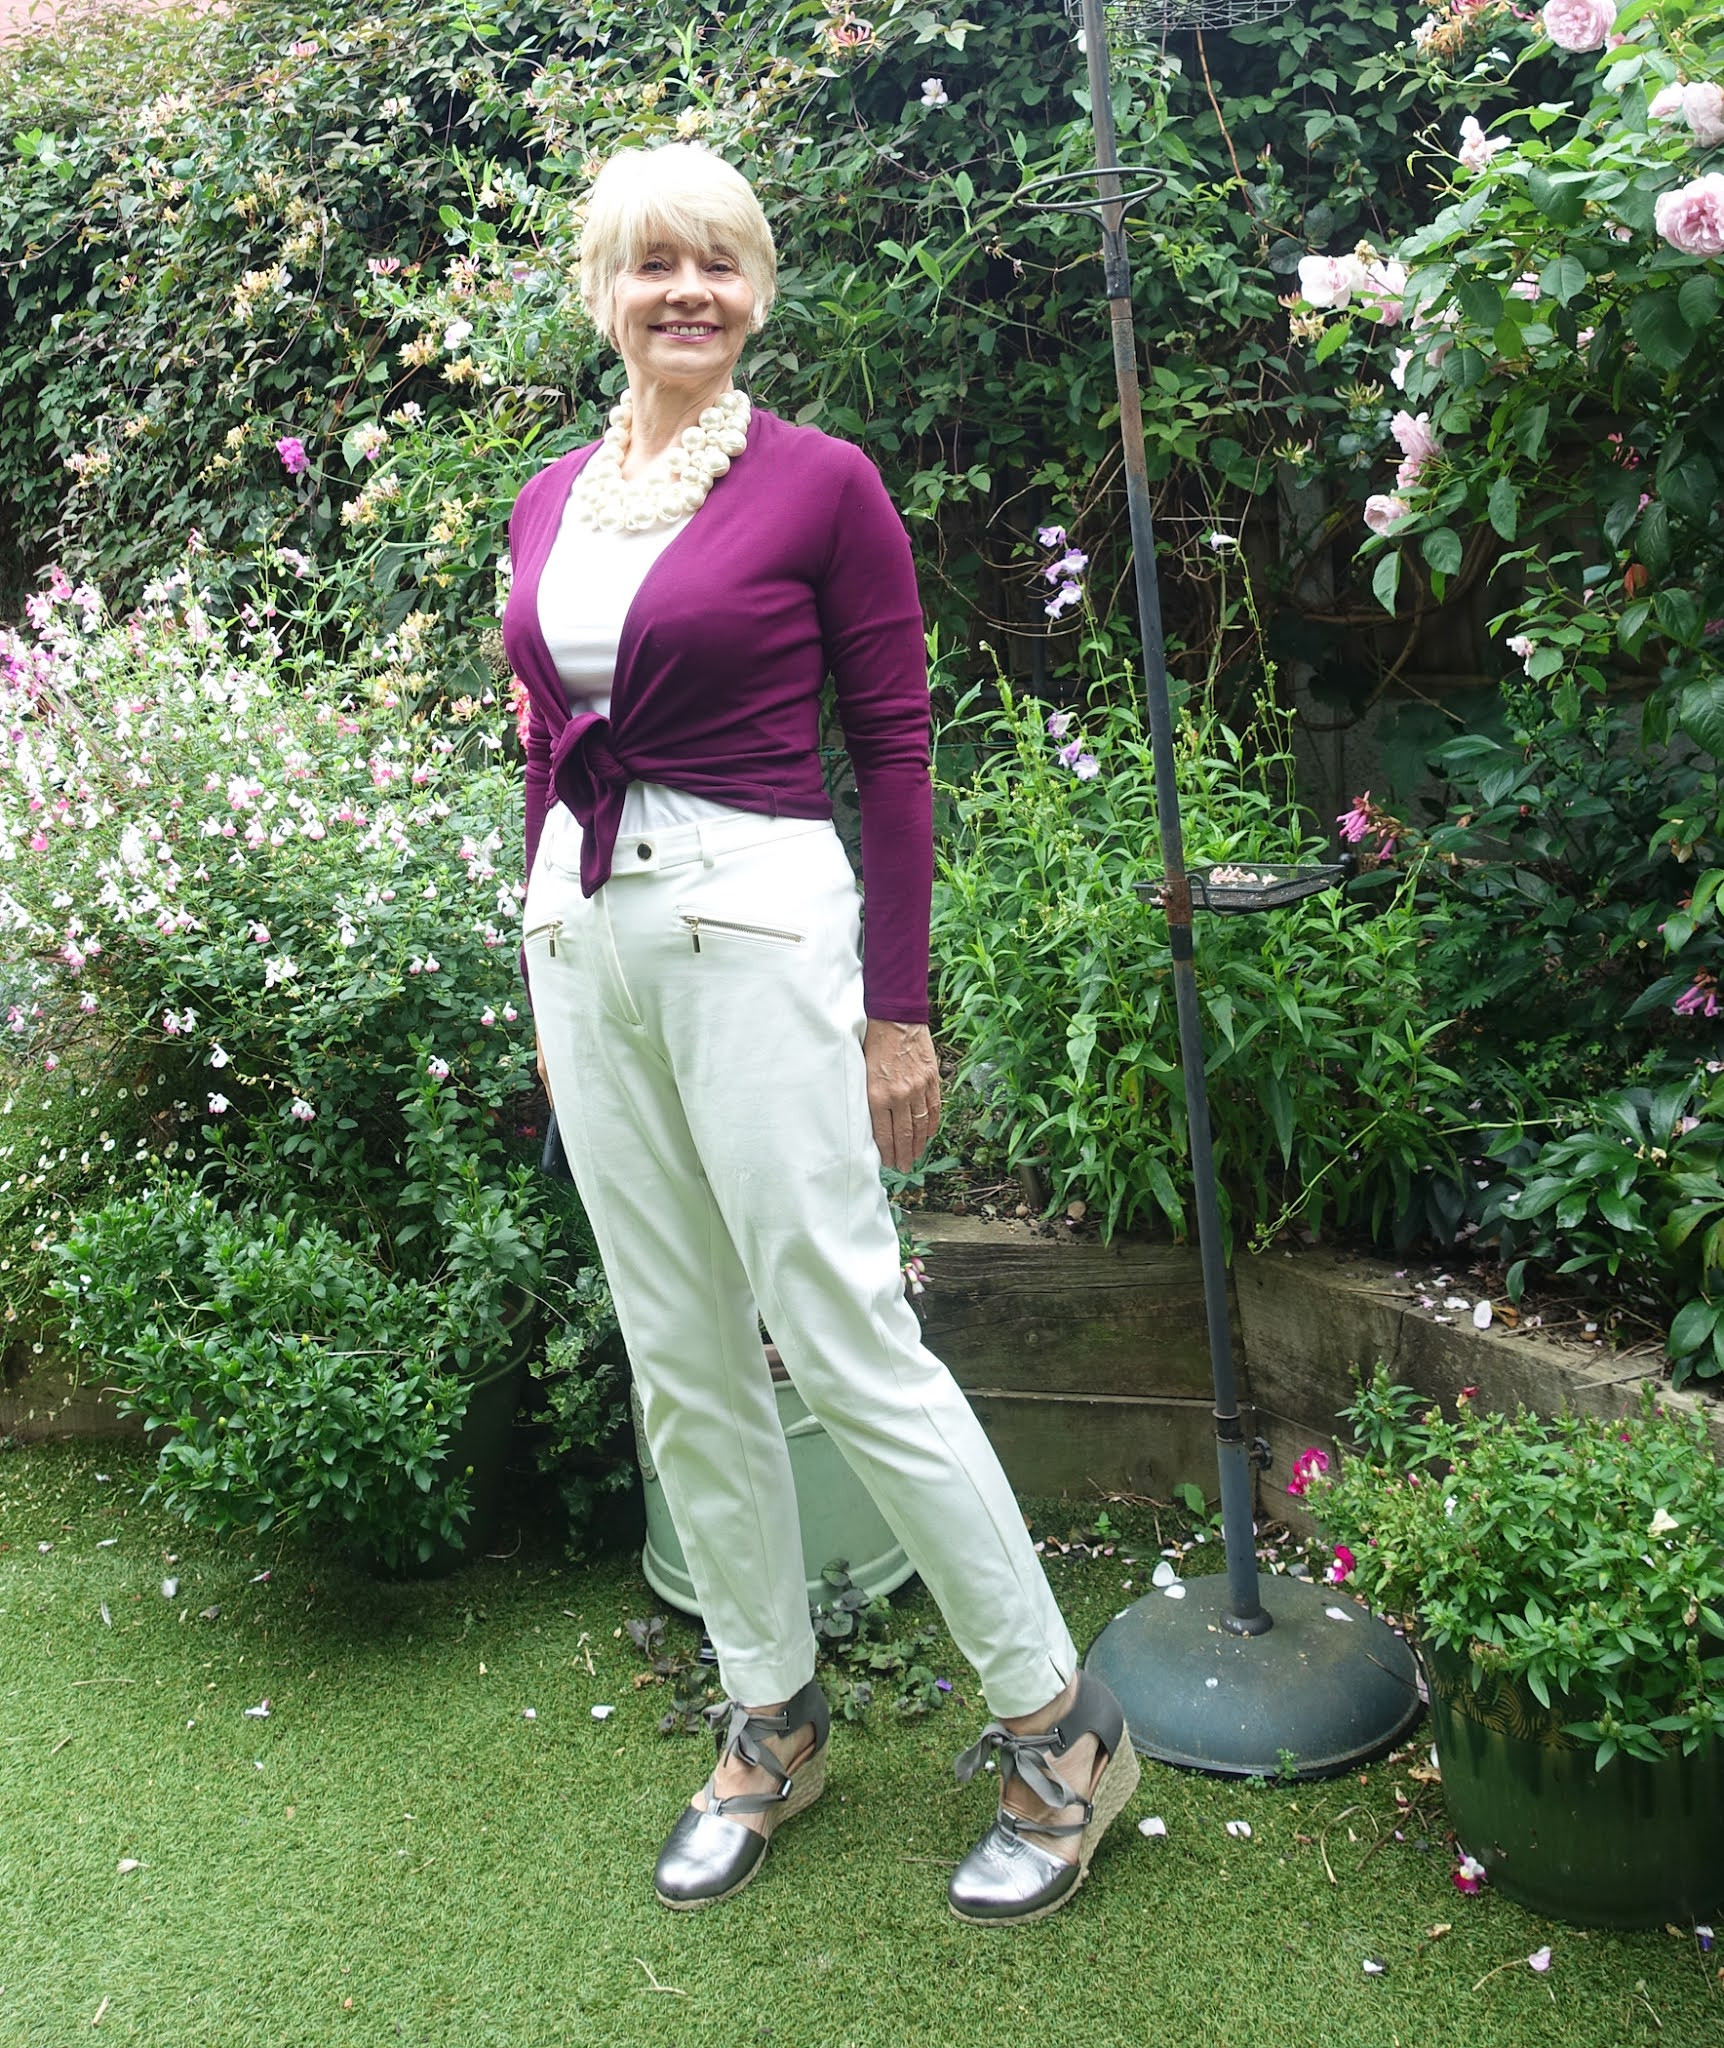 Gail Hanlon from Is This Mutton in high summer garden, wearing all-white with a Beetroot wrap and gunmetal wedges,